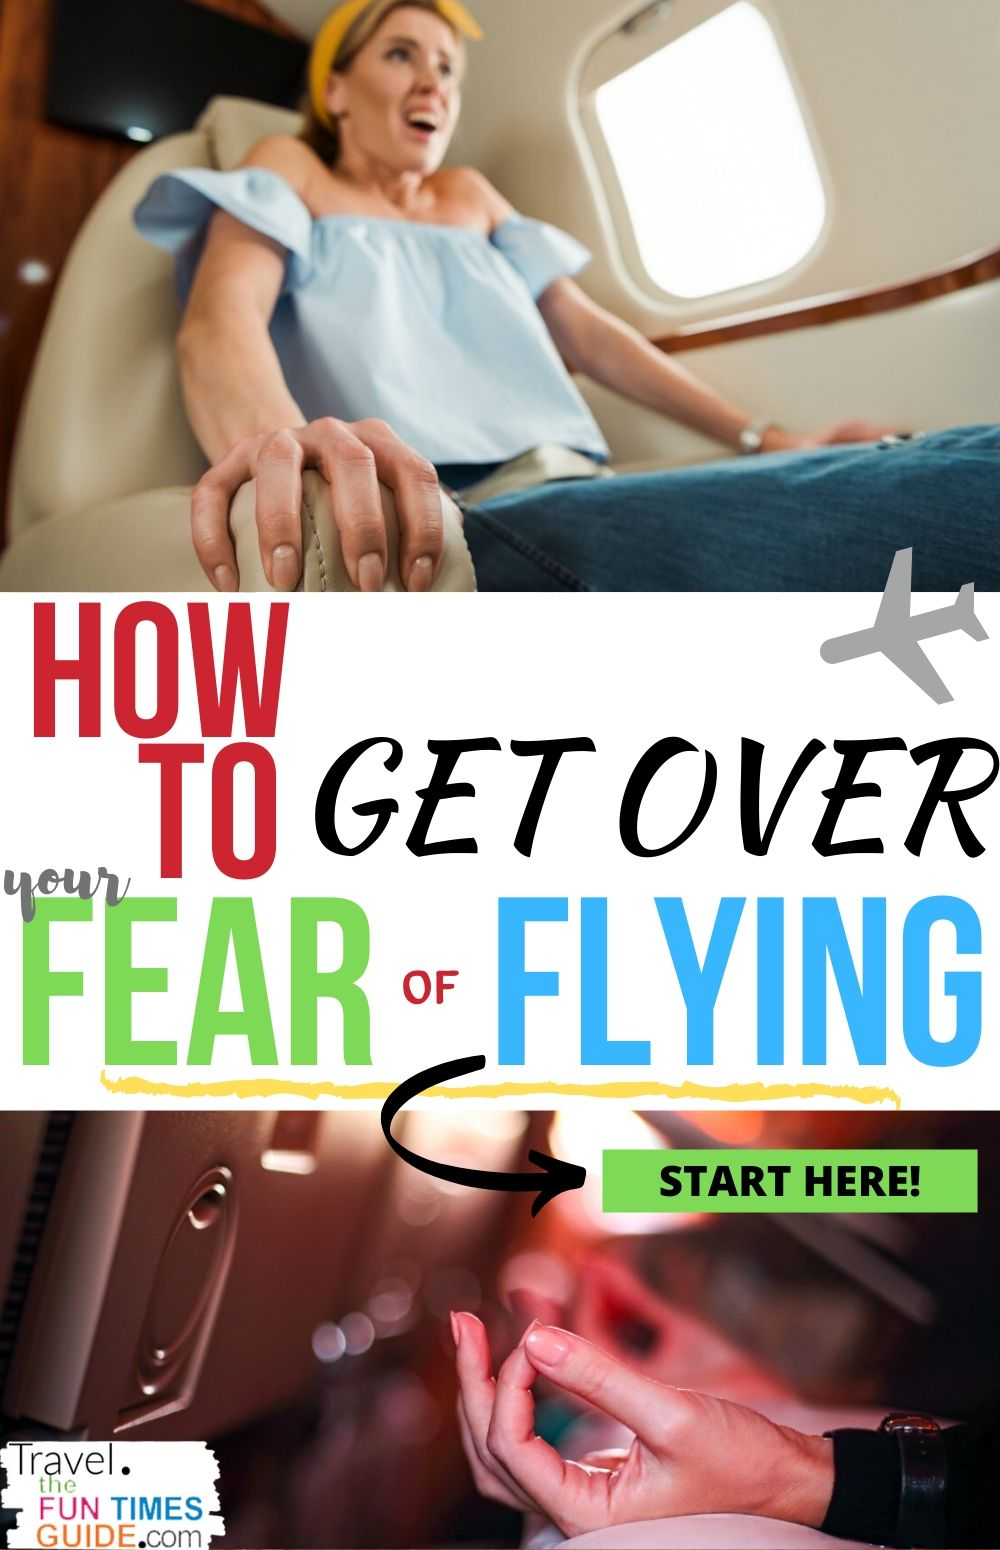 Have A Fear Of Flying? Here's How I Overcame Mind-Numbing Flight Anxiety… And You Can Too!